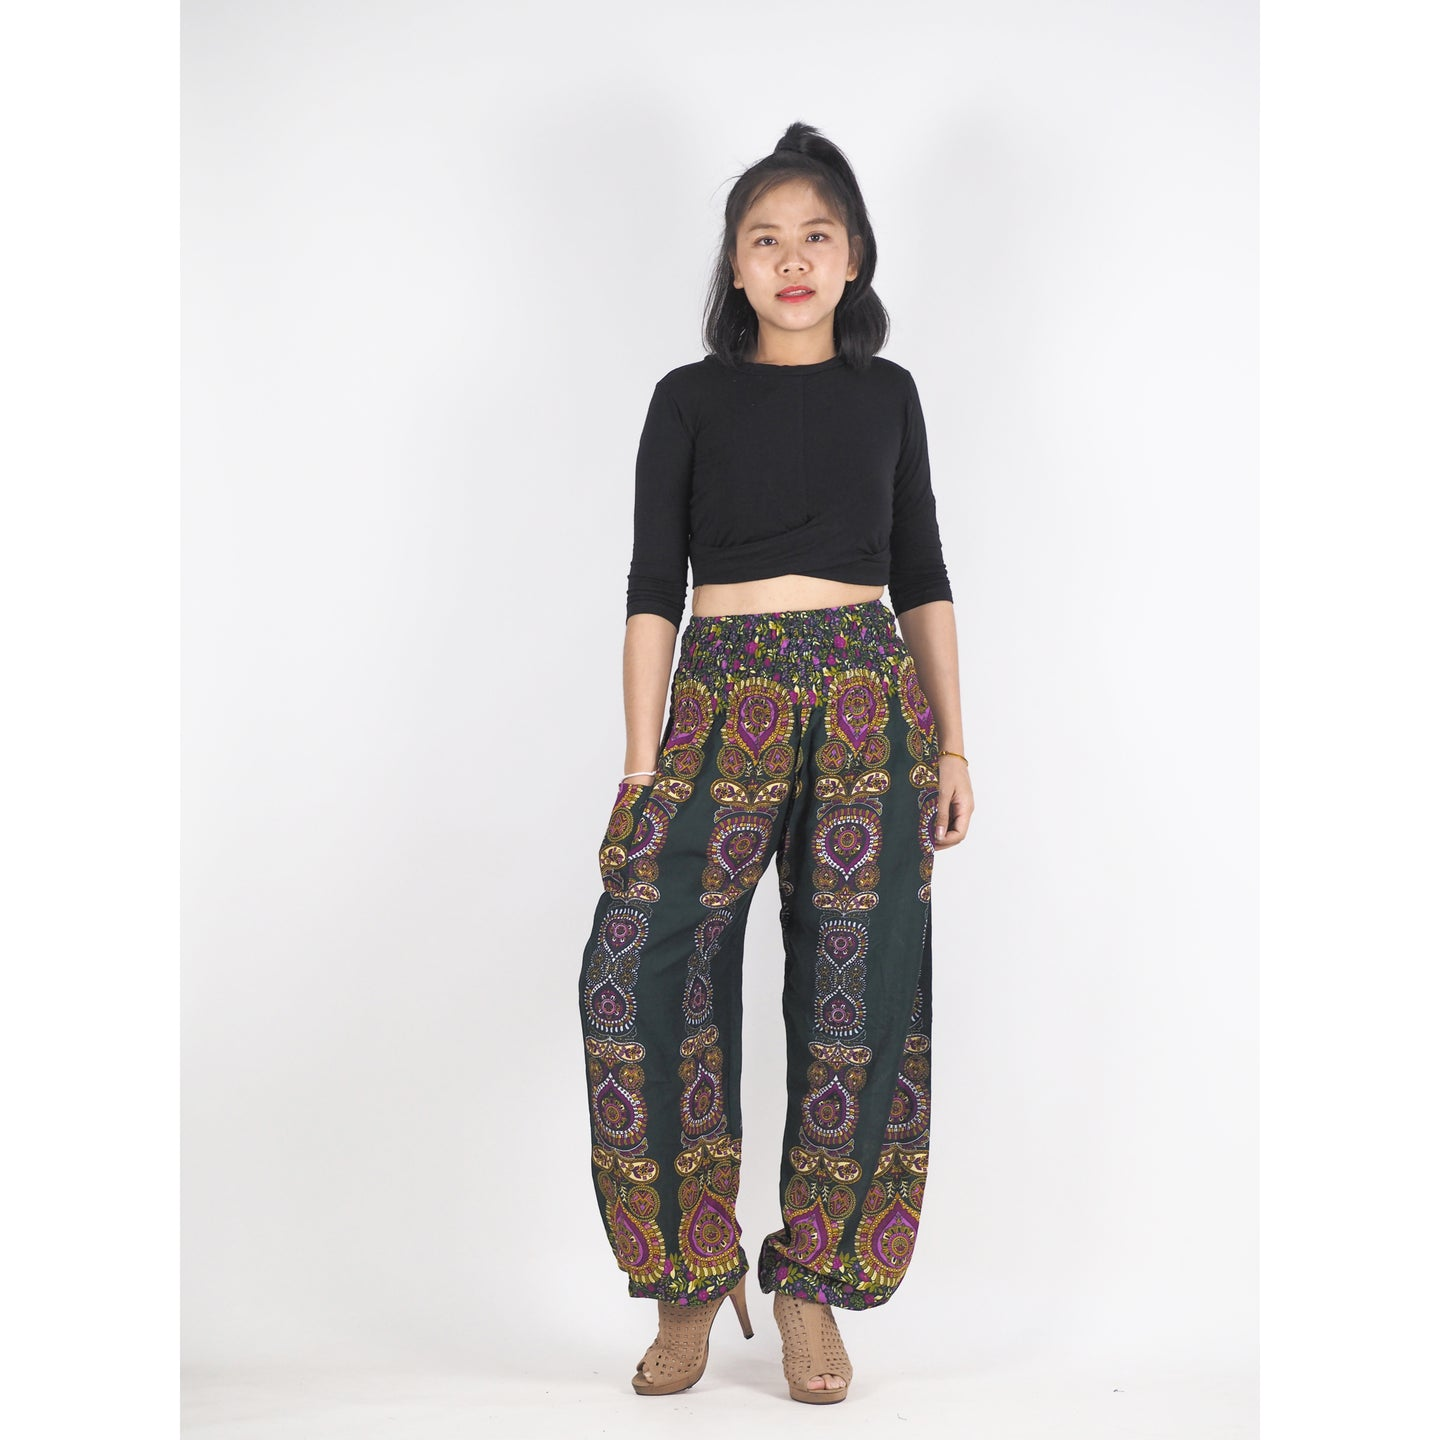 Love stripe 188 women harem pants in Green PP0004 020188 04